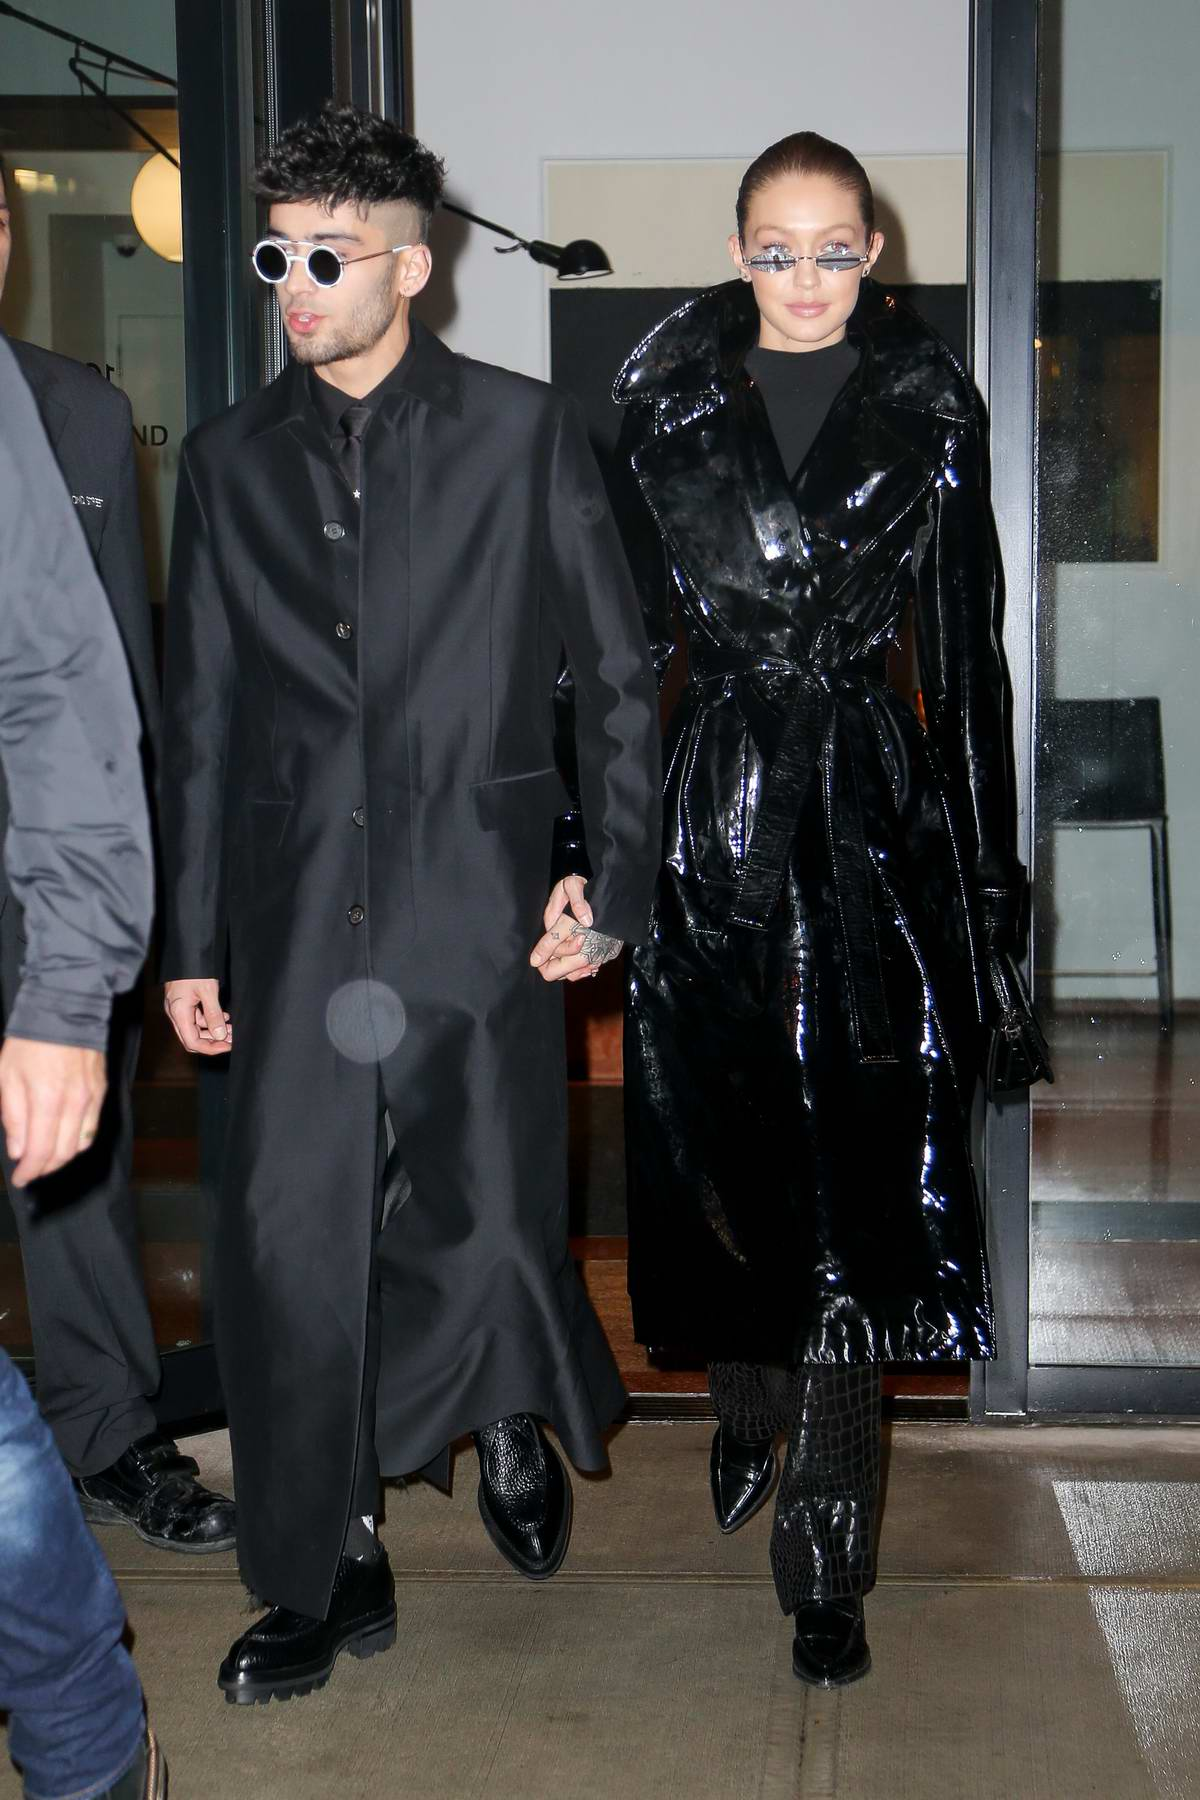 Gigi Hadid and Zayn Malik seen wearing matching all black as they heading out to celebrate the singer's 25th birthday in New York City